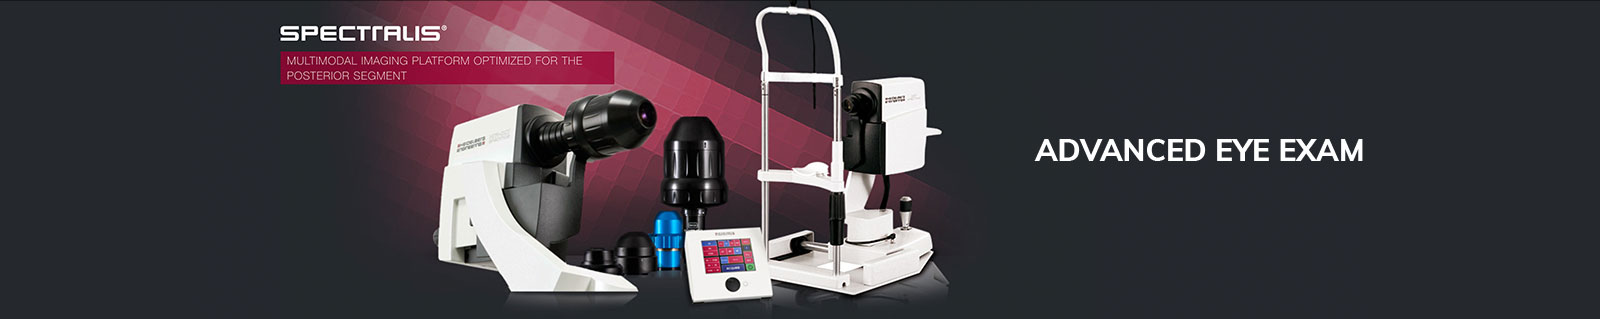 Spectralis OCT the most advanced in the world